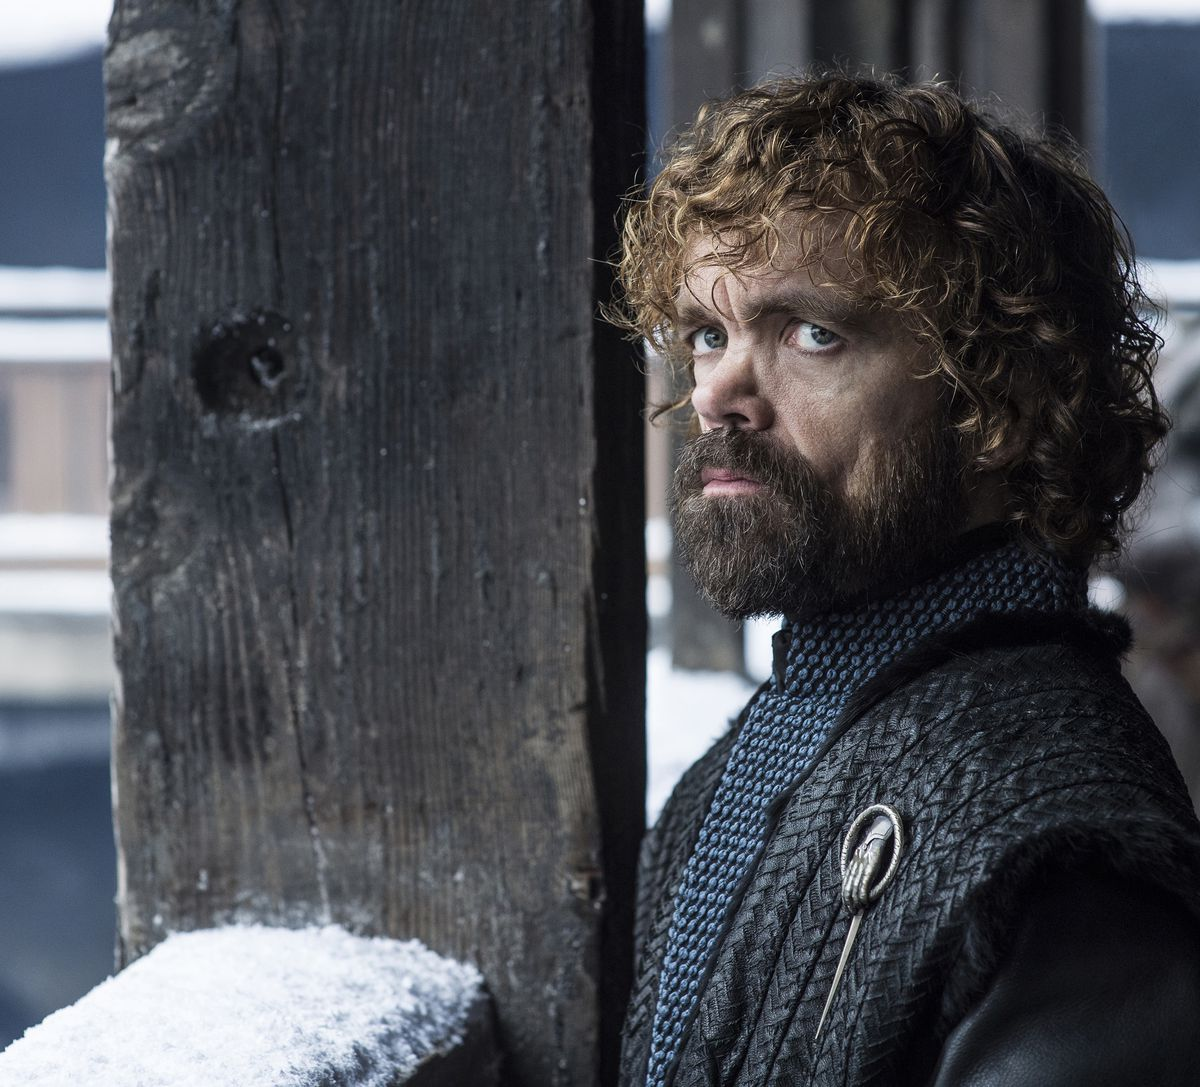 Game of Thrones season 8 - Tyrion Lannister at Winterfell